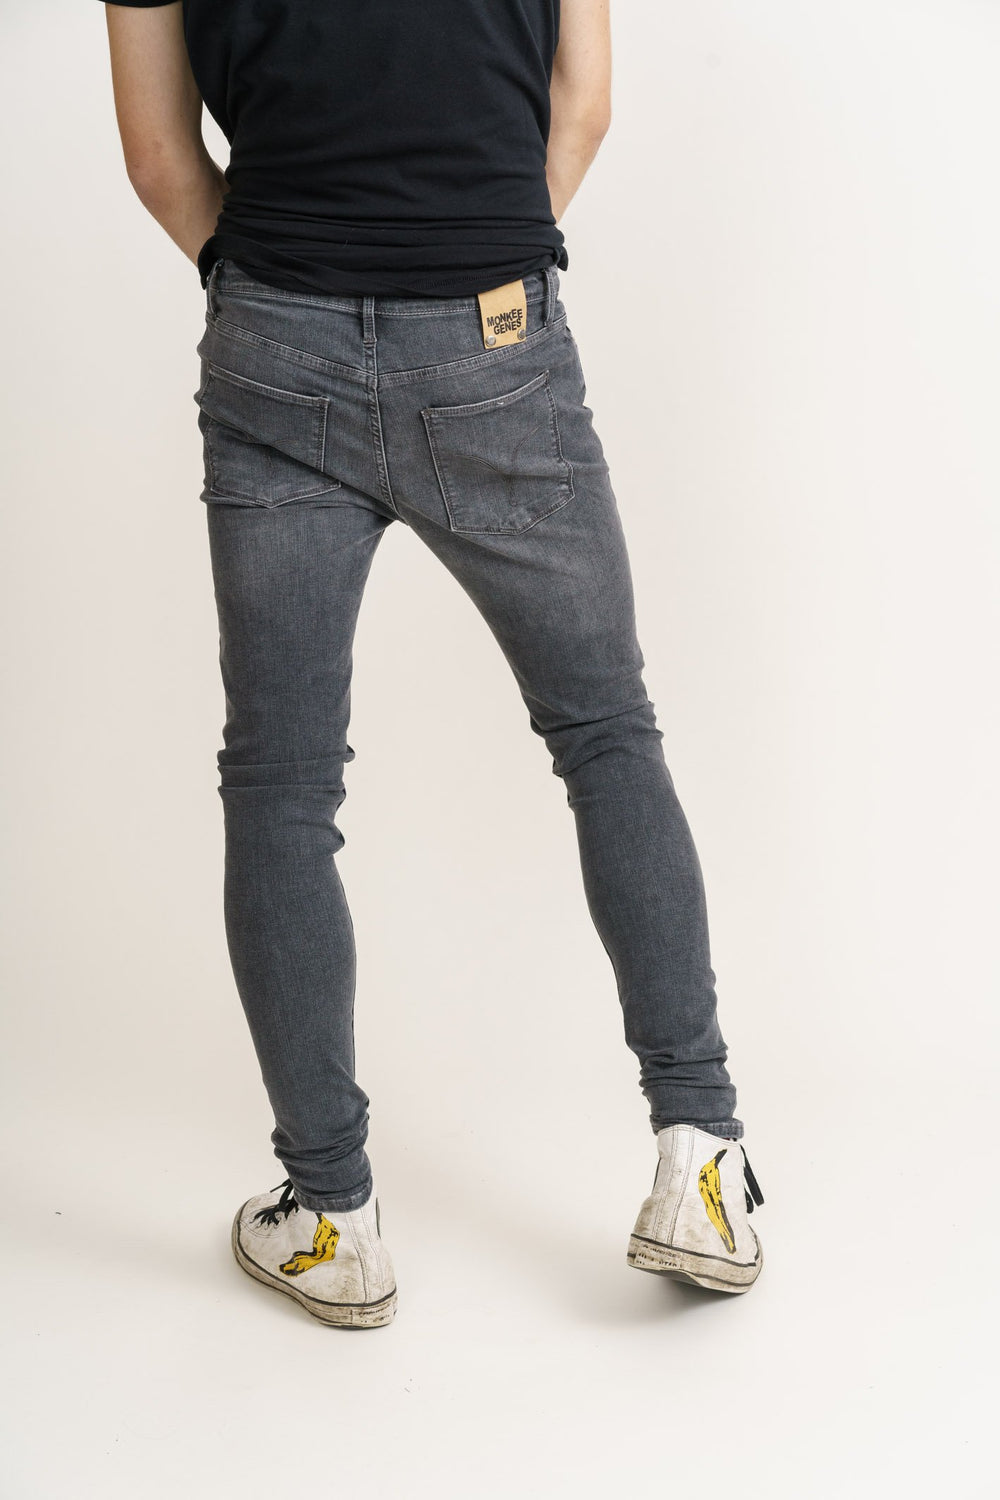 Organic Flex Super Skinny Jean in Grey Wash - Monkee Genes Organic Jeans Denim - Men's Silhouette Monkee Genes Official  Monkee Genes Official